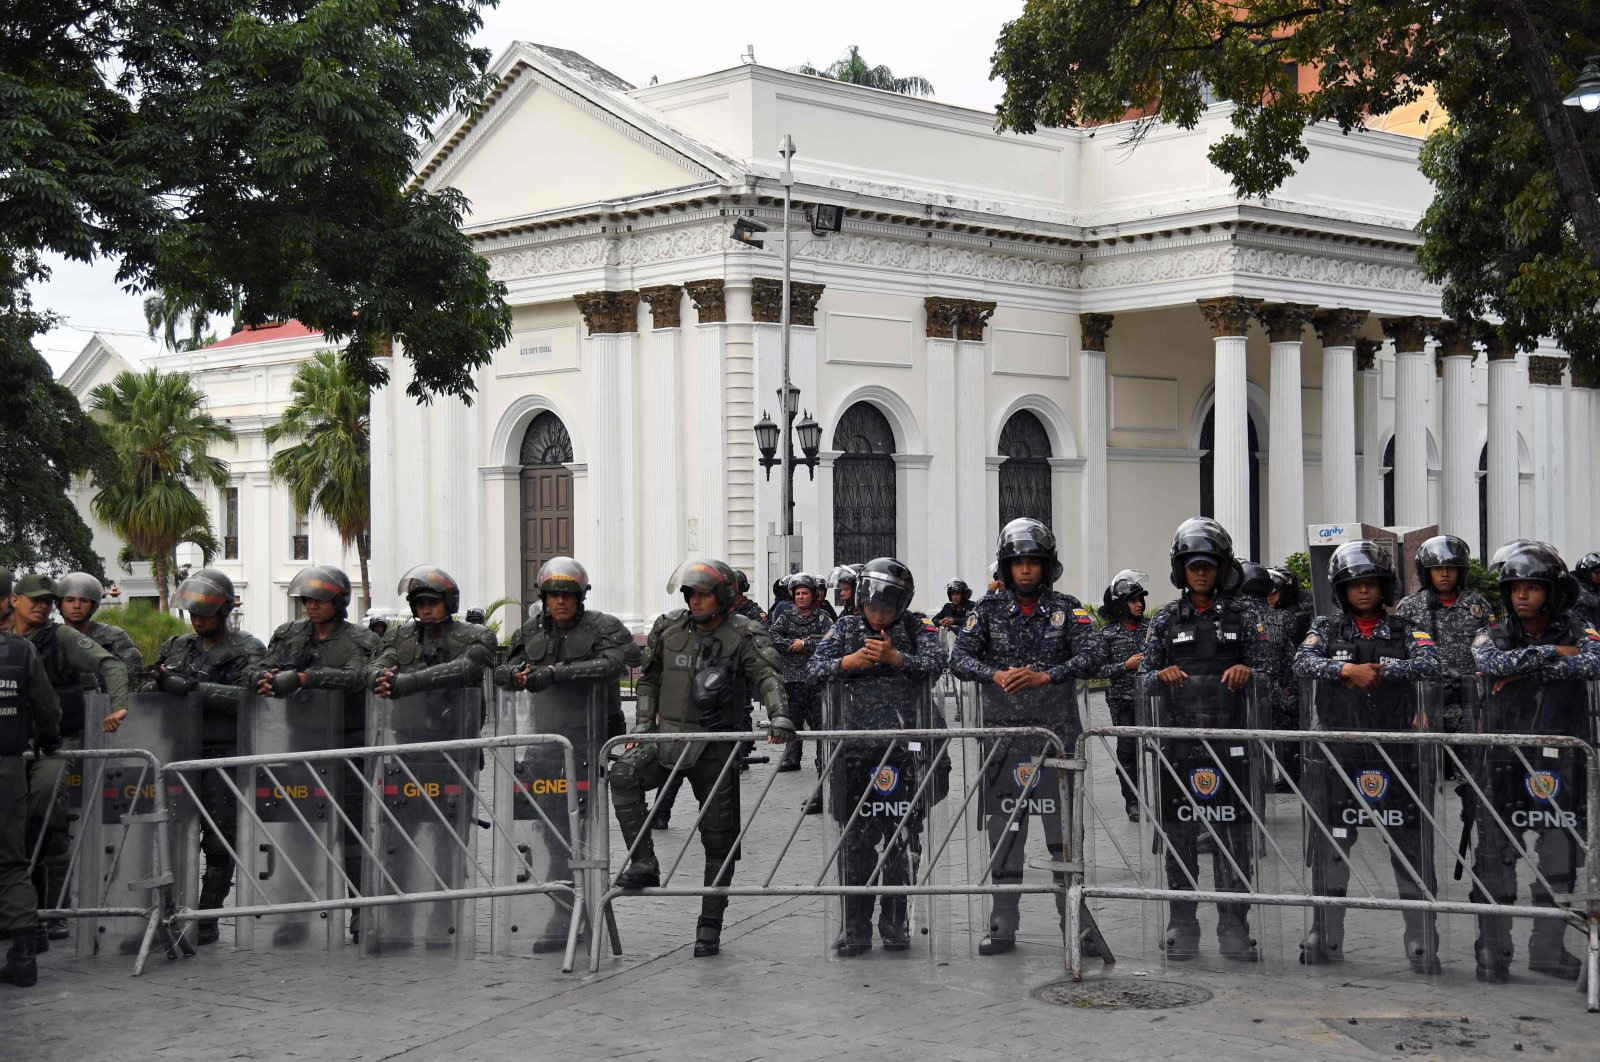 Members of the Bolivarian National Guard and National Police stand guard outside of the National Assembly in Caracas, Venezuela, Jan. 5, 2020. (AFP Photo)